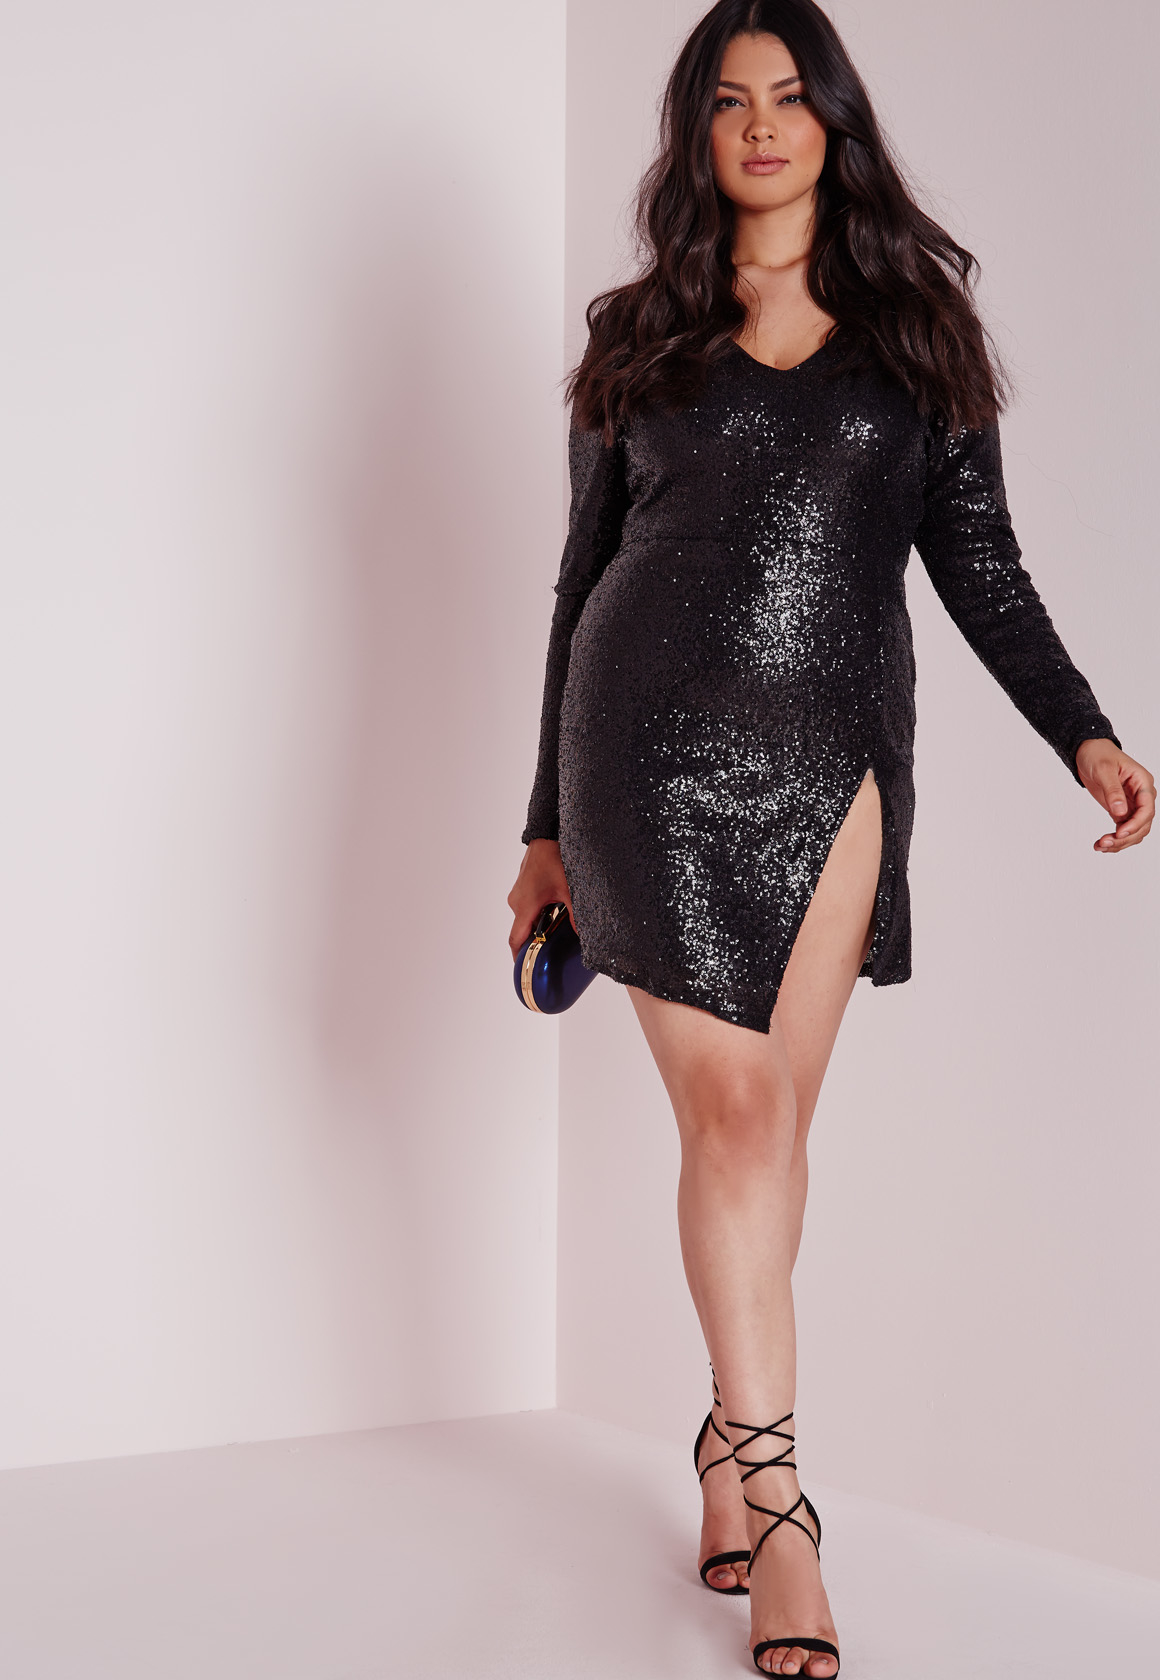 Lyst - Missguided Plus Size Sequin Long Sleeve Mini Dress Black in ...